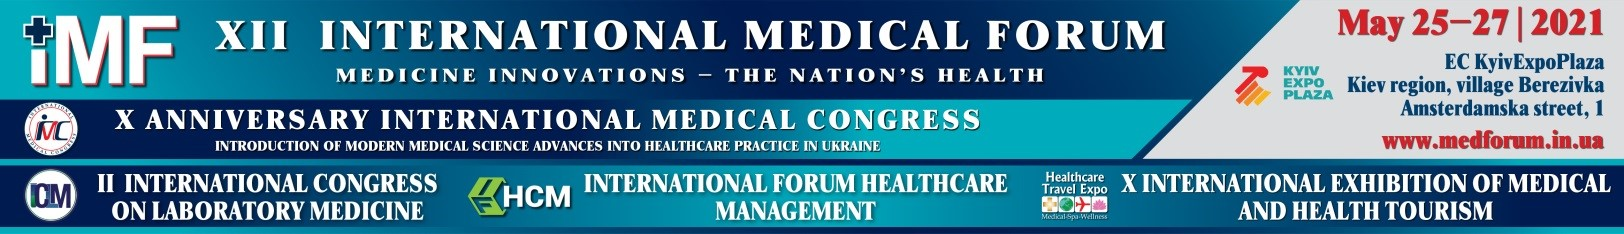 International Medical Forum 2021